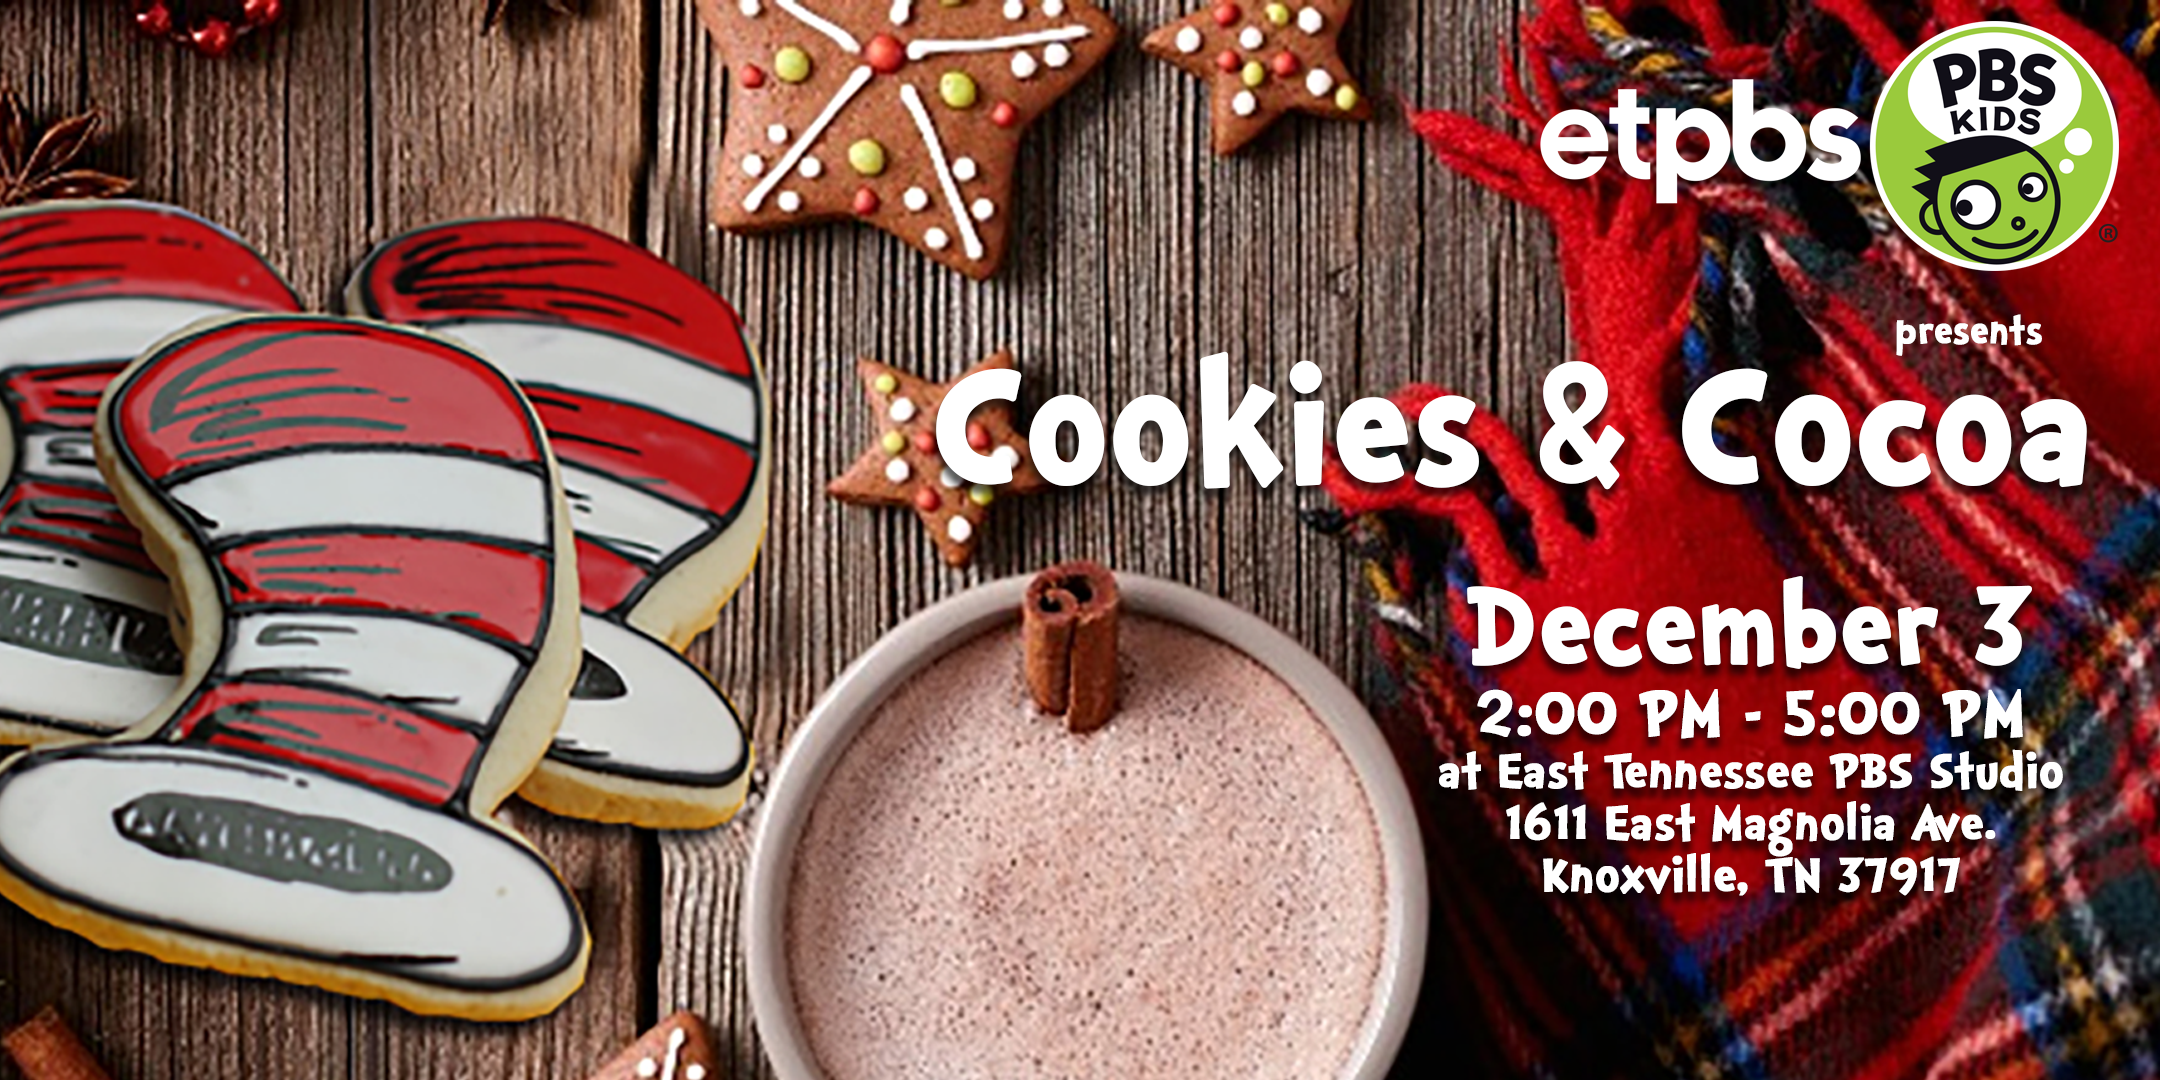 Second Annual East Tennessee PBS Cookies and Cocoa